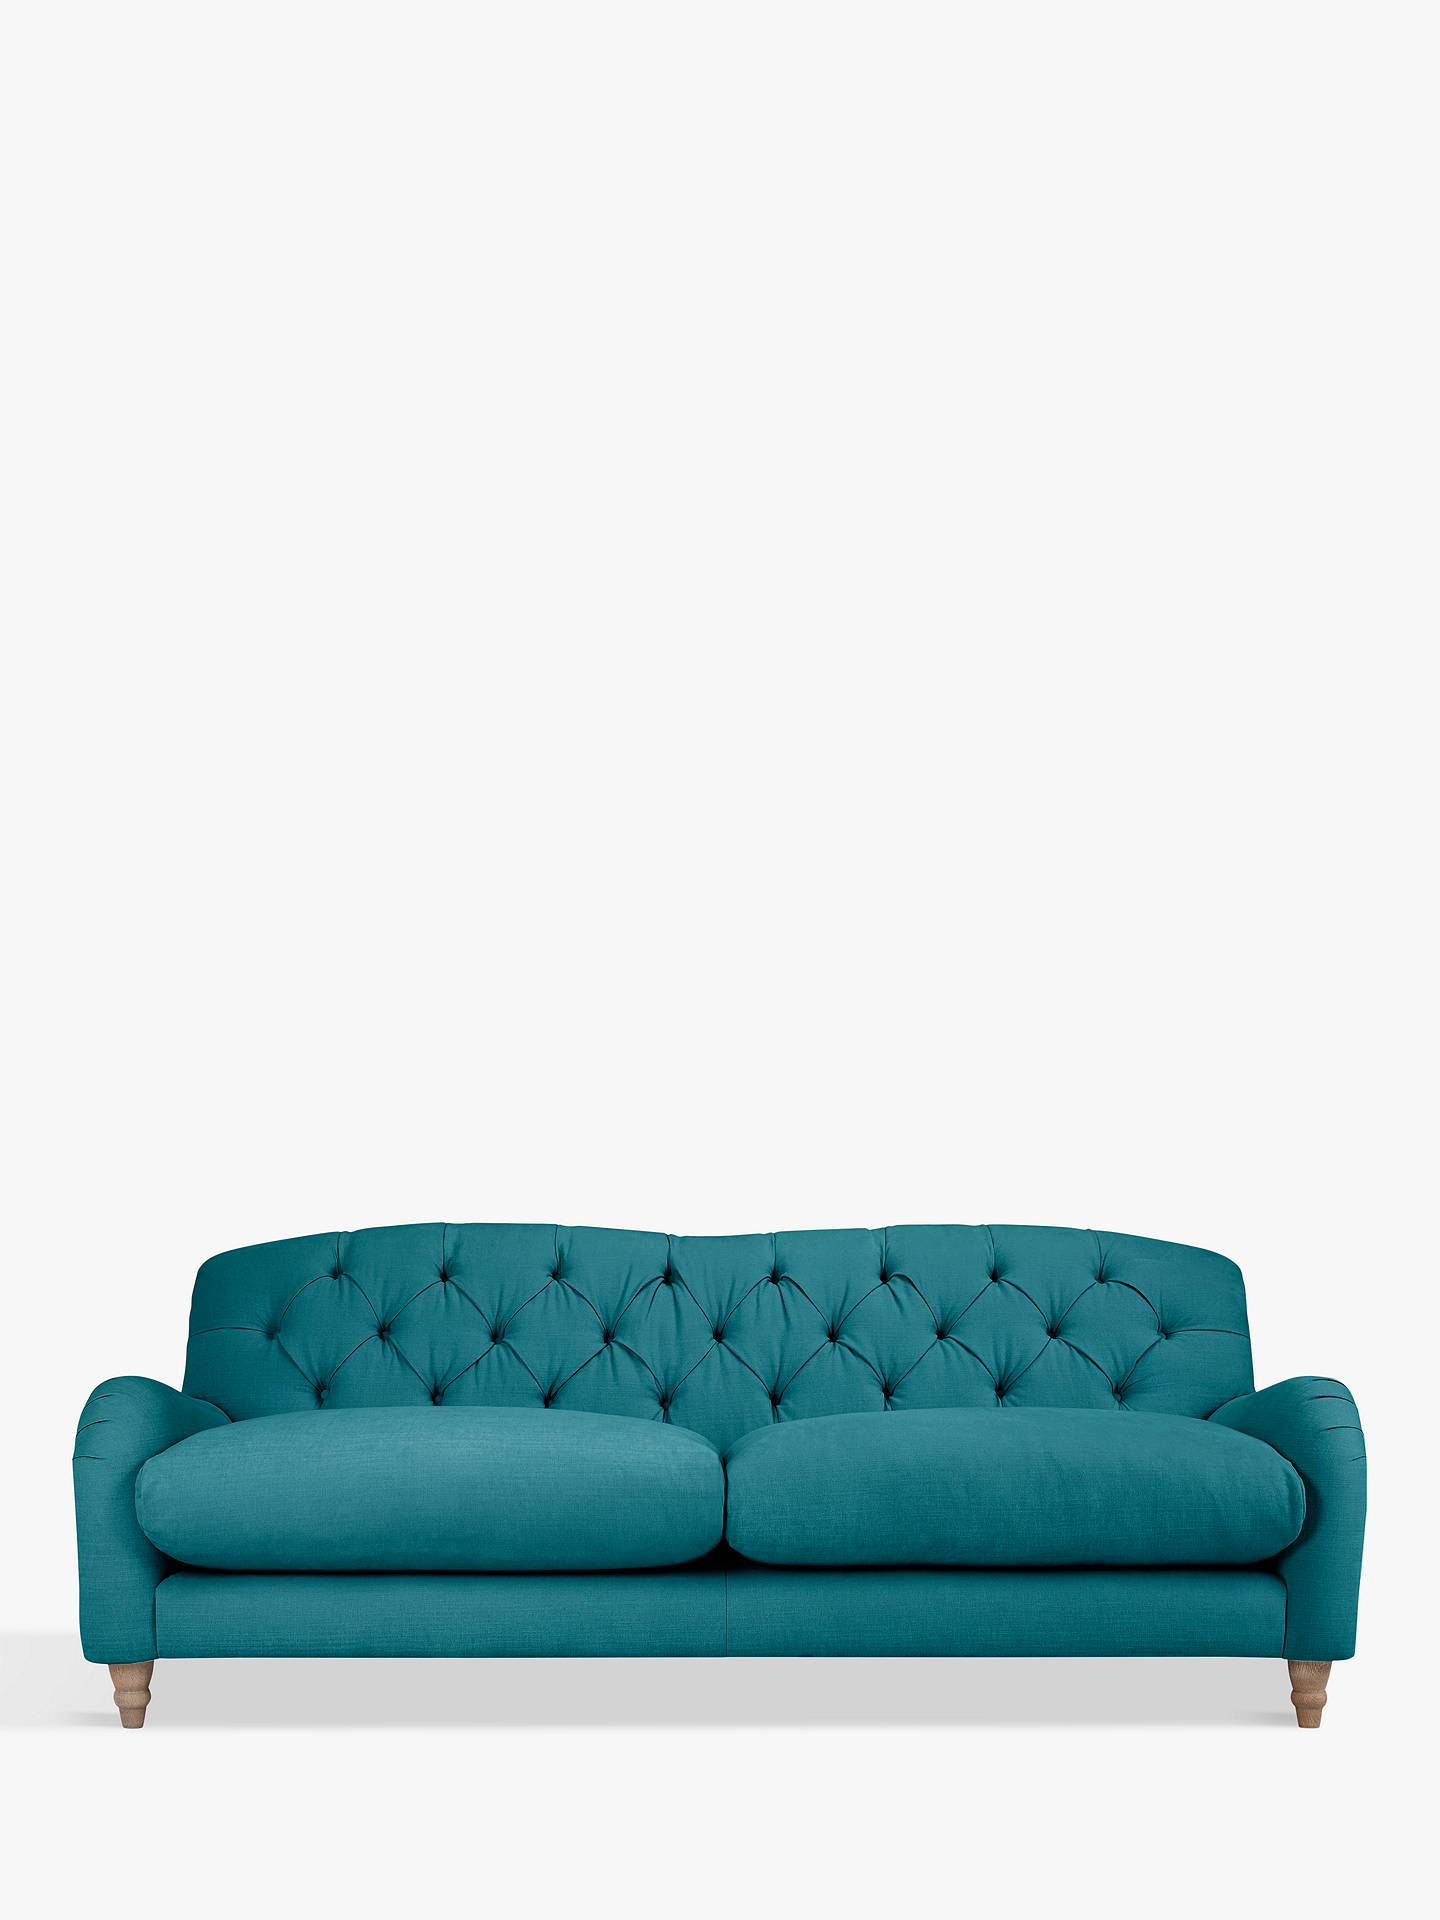 BuyCrumble Large 3 Seater Sofa by Loaf at John Lewis, Brushed Cotton Teal Online at johnlewis.com